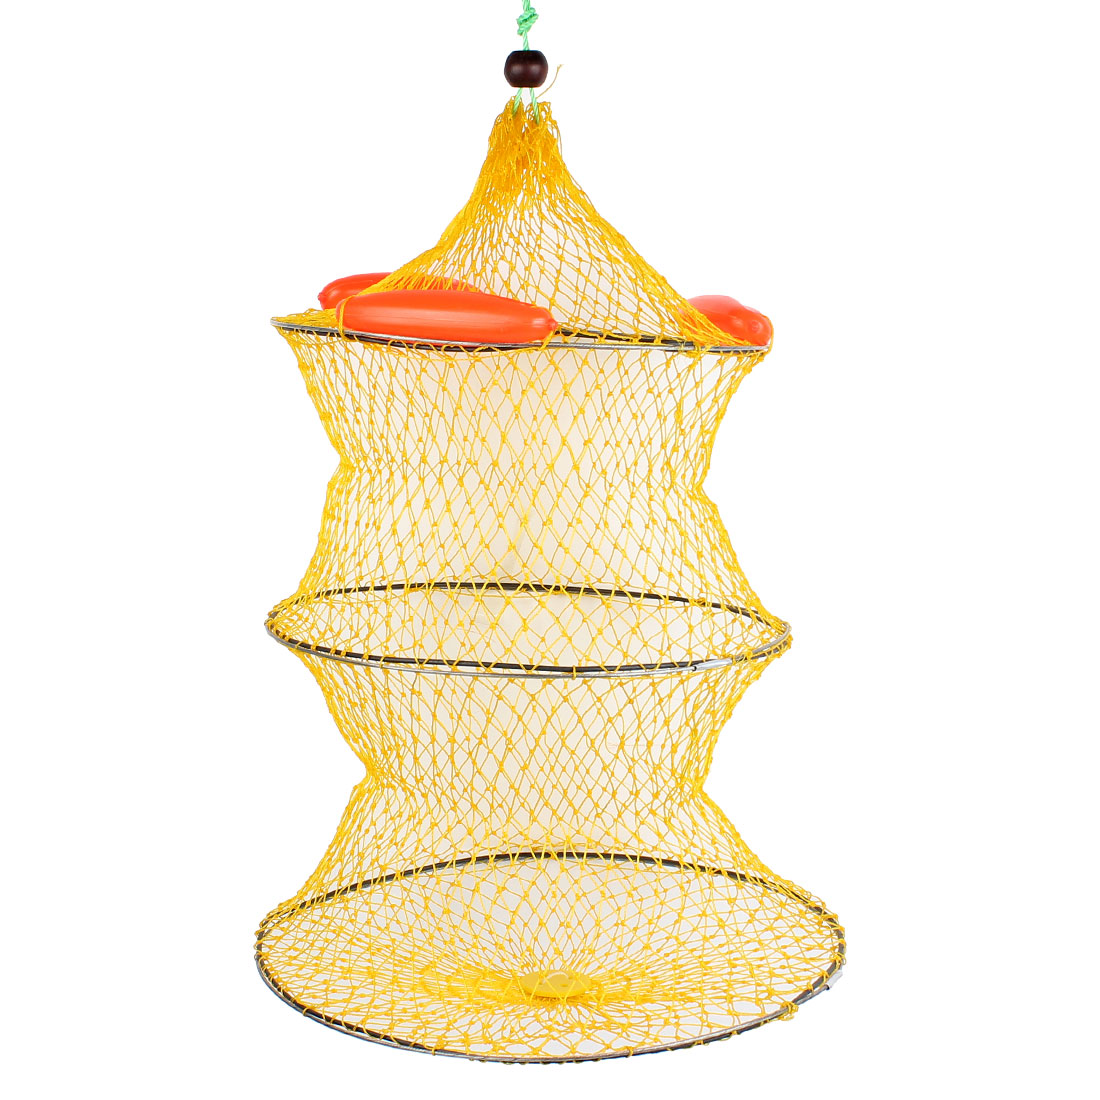 60cm High 2 Sections Collapsible Meshy Fish Cage Fishing Bait Crawfish Shrimp Keep Net Yellow